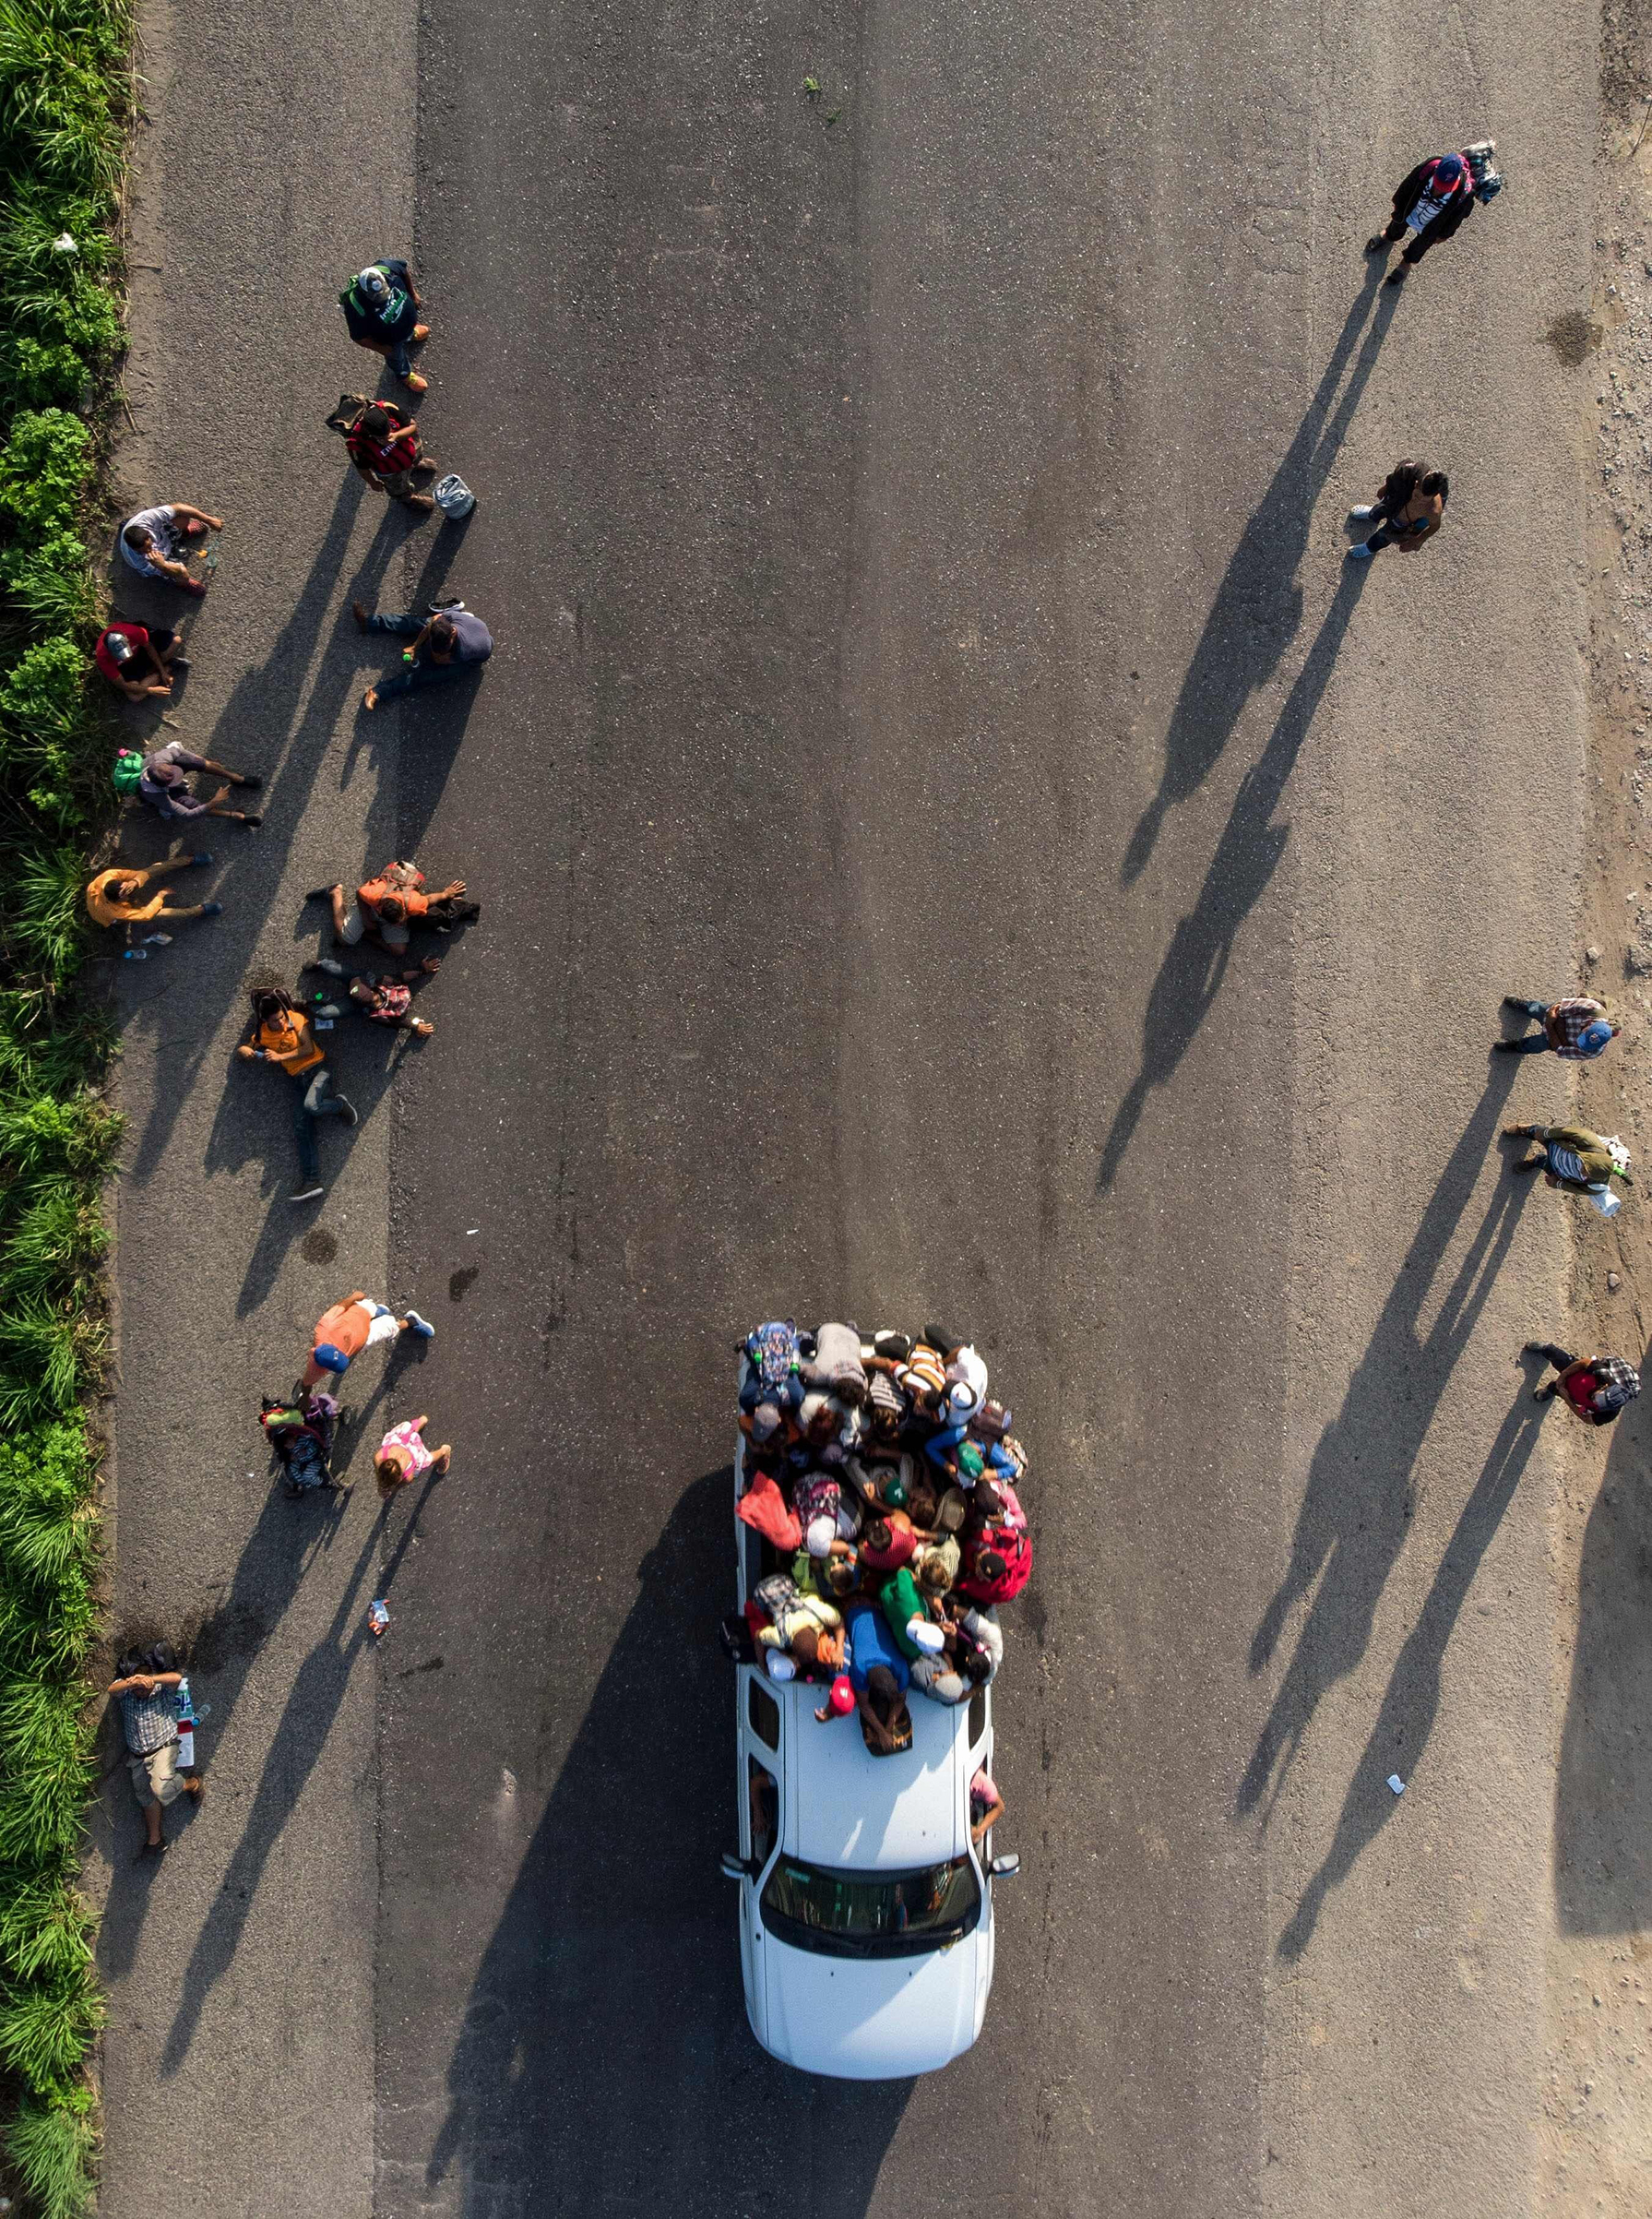 Honduran migrants, part of a caravan to the U.S., resume their march in Oaxaca State, Mexico, on Oct. 29